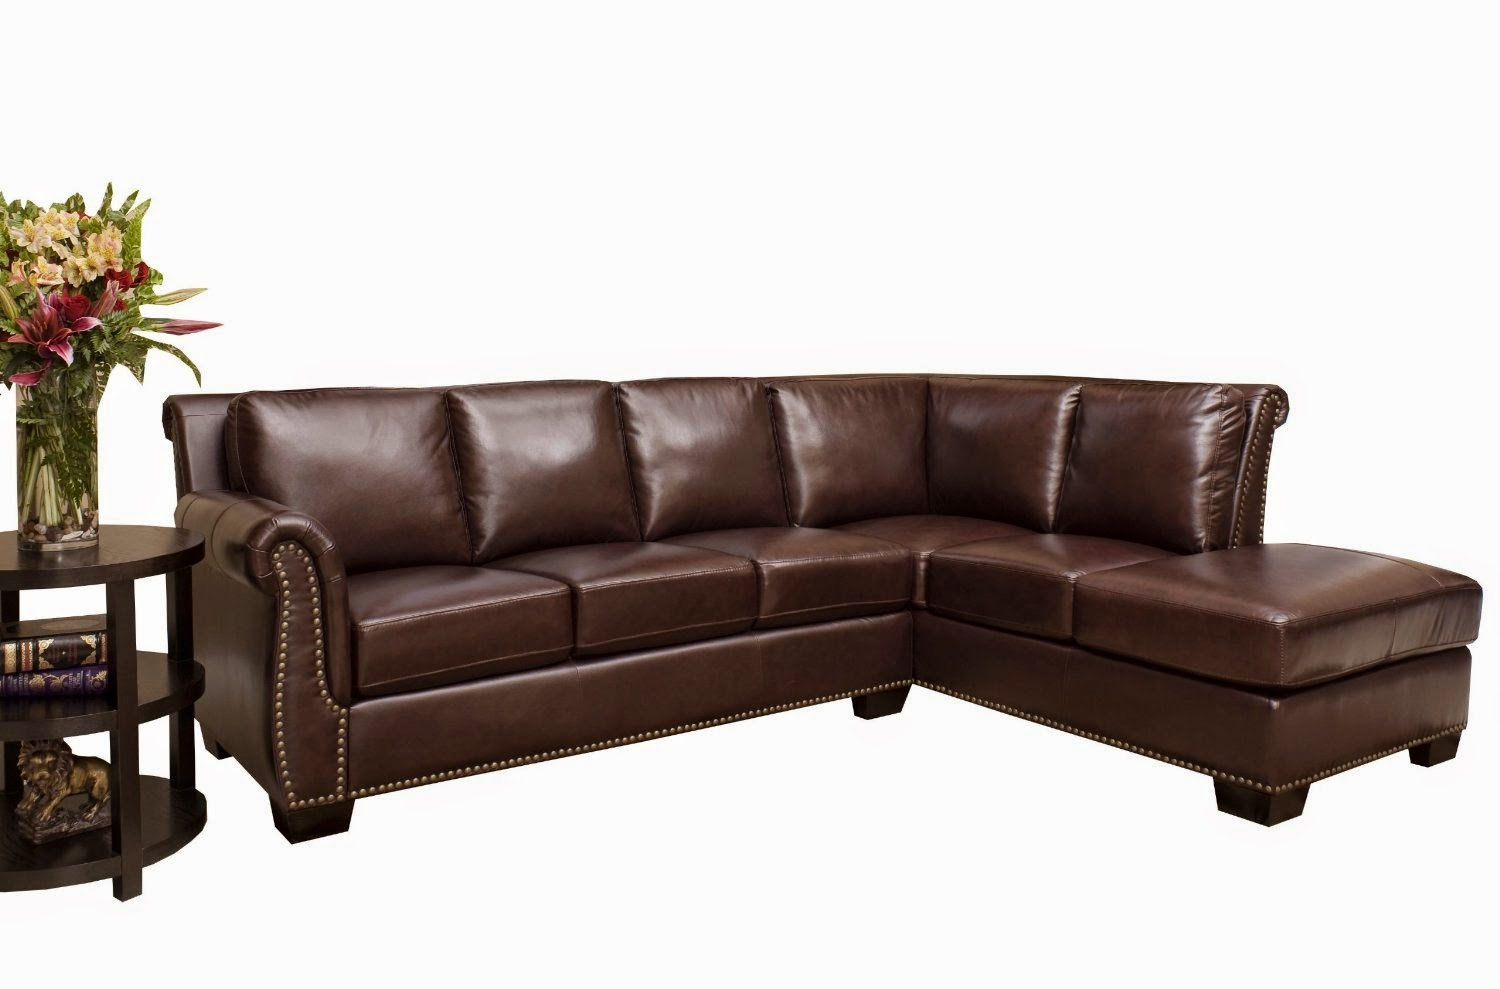 Sectional sofa leather sectional sofa for Sectional furniture